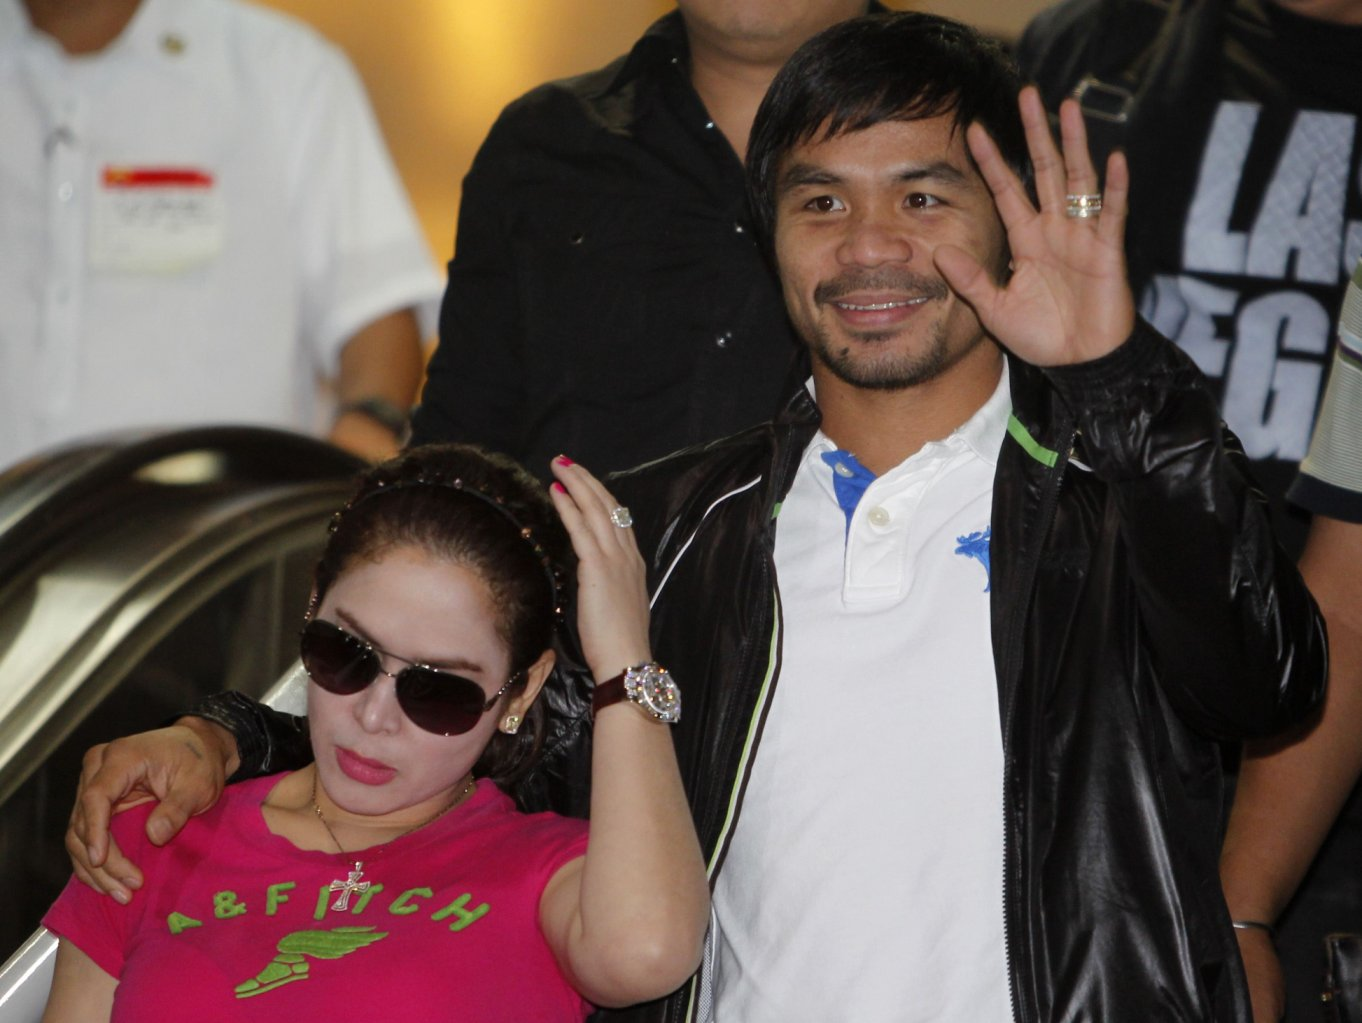 Filipino boxing icon Manny Pacquiao waves beside his wife Jinkee upon his arrival at the Ninoy Aquino International Airport in Manila